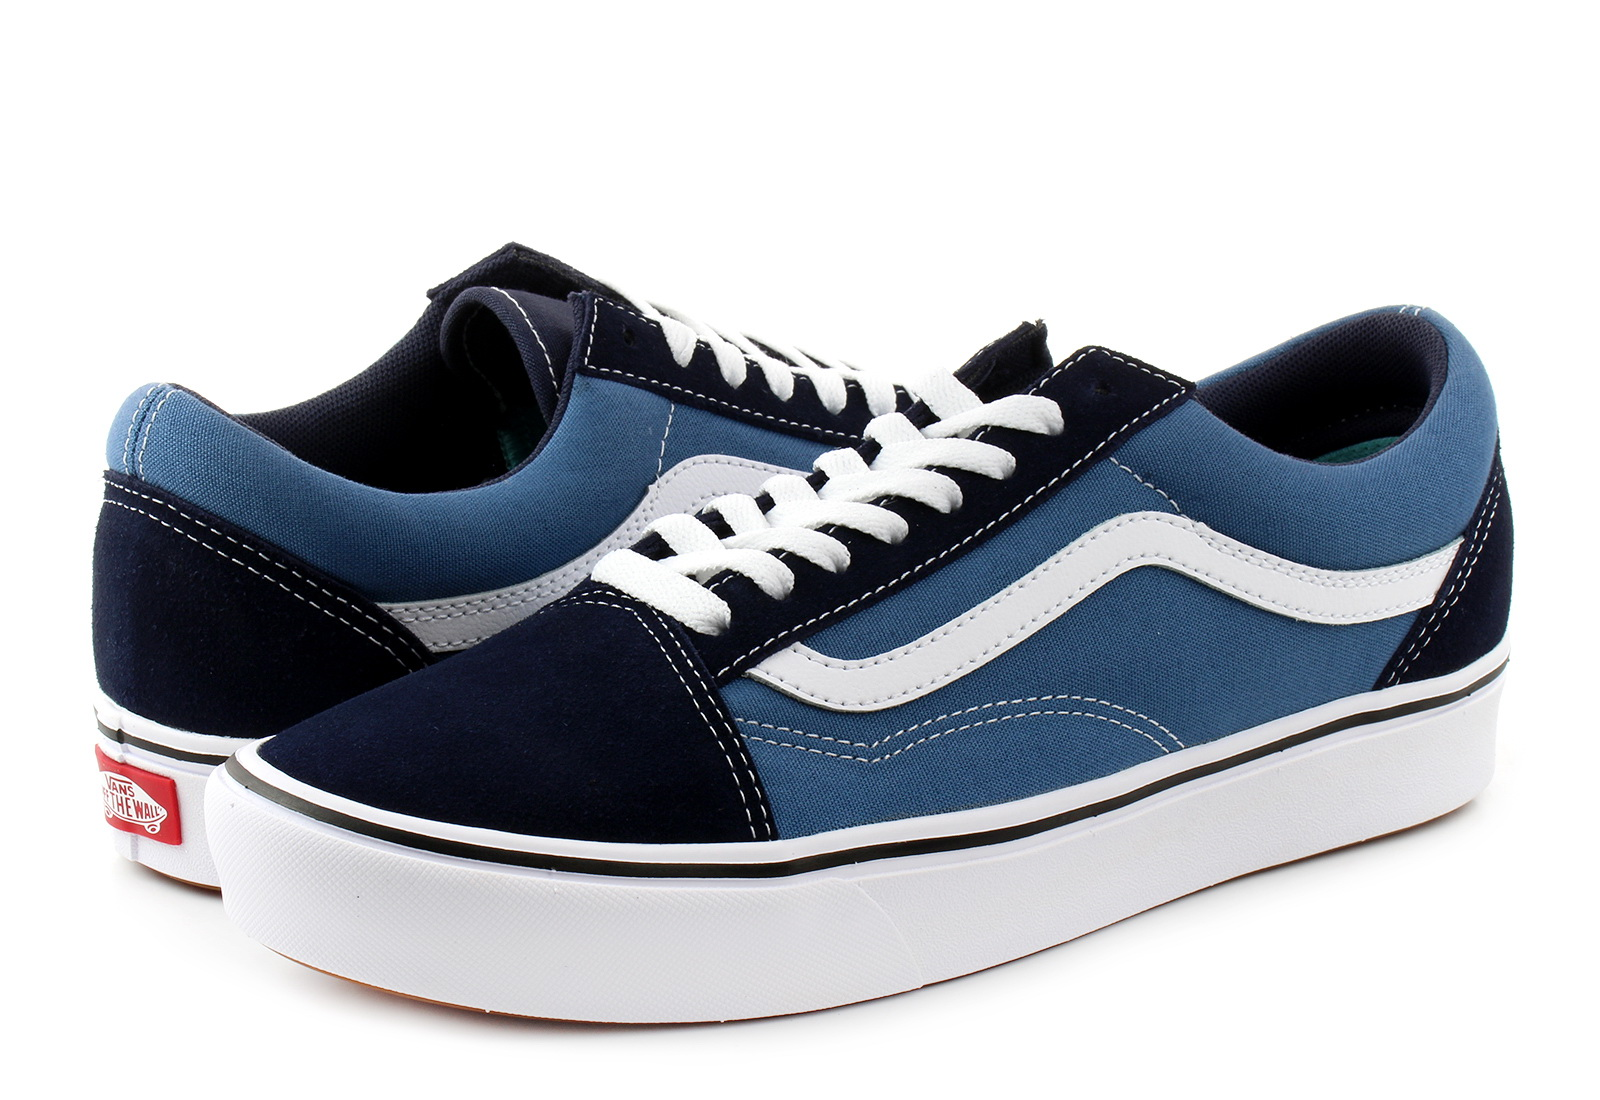 Vans Shoes Ua Comfy Cush Old Skool